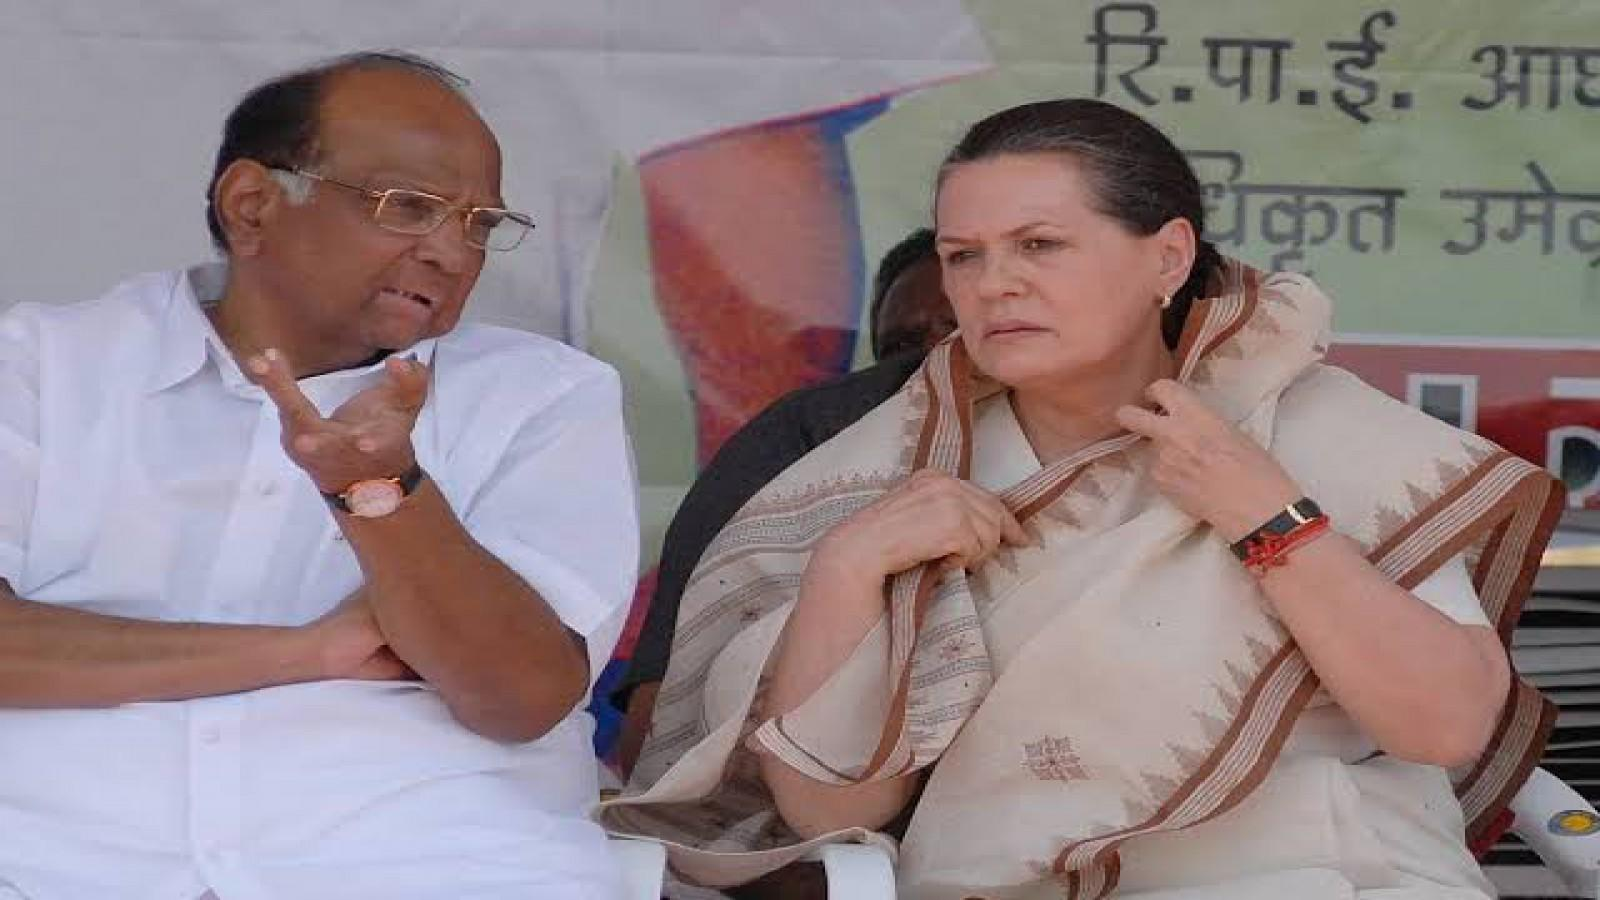 sharad-pawar-sonia-gandhi-meet-to-discuss-government-formation-in-maharashtra